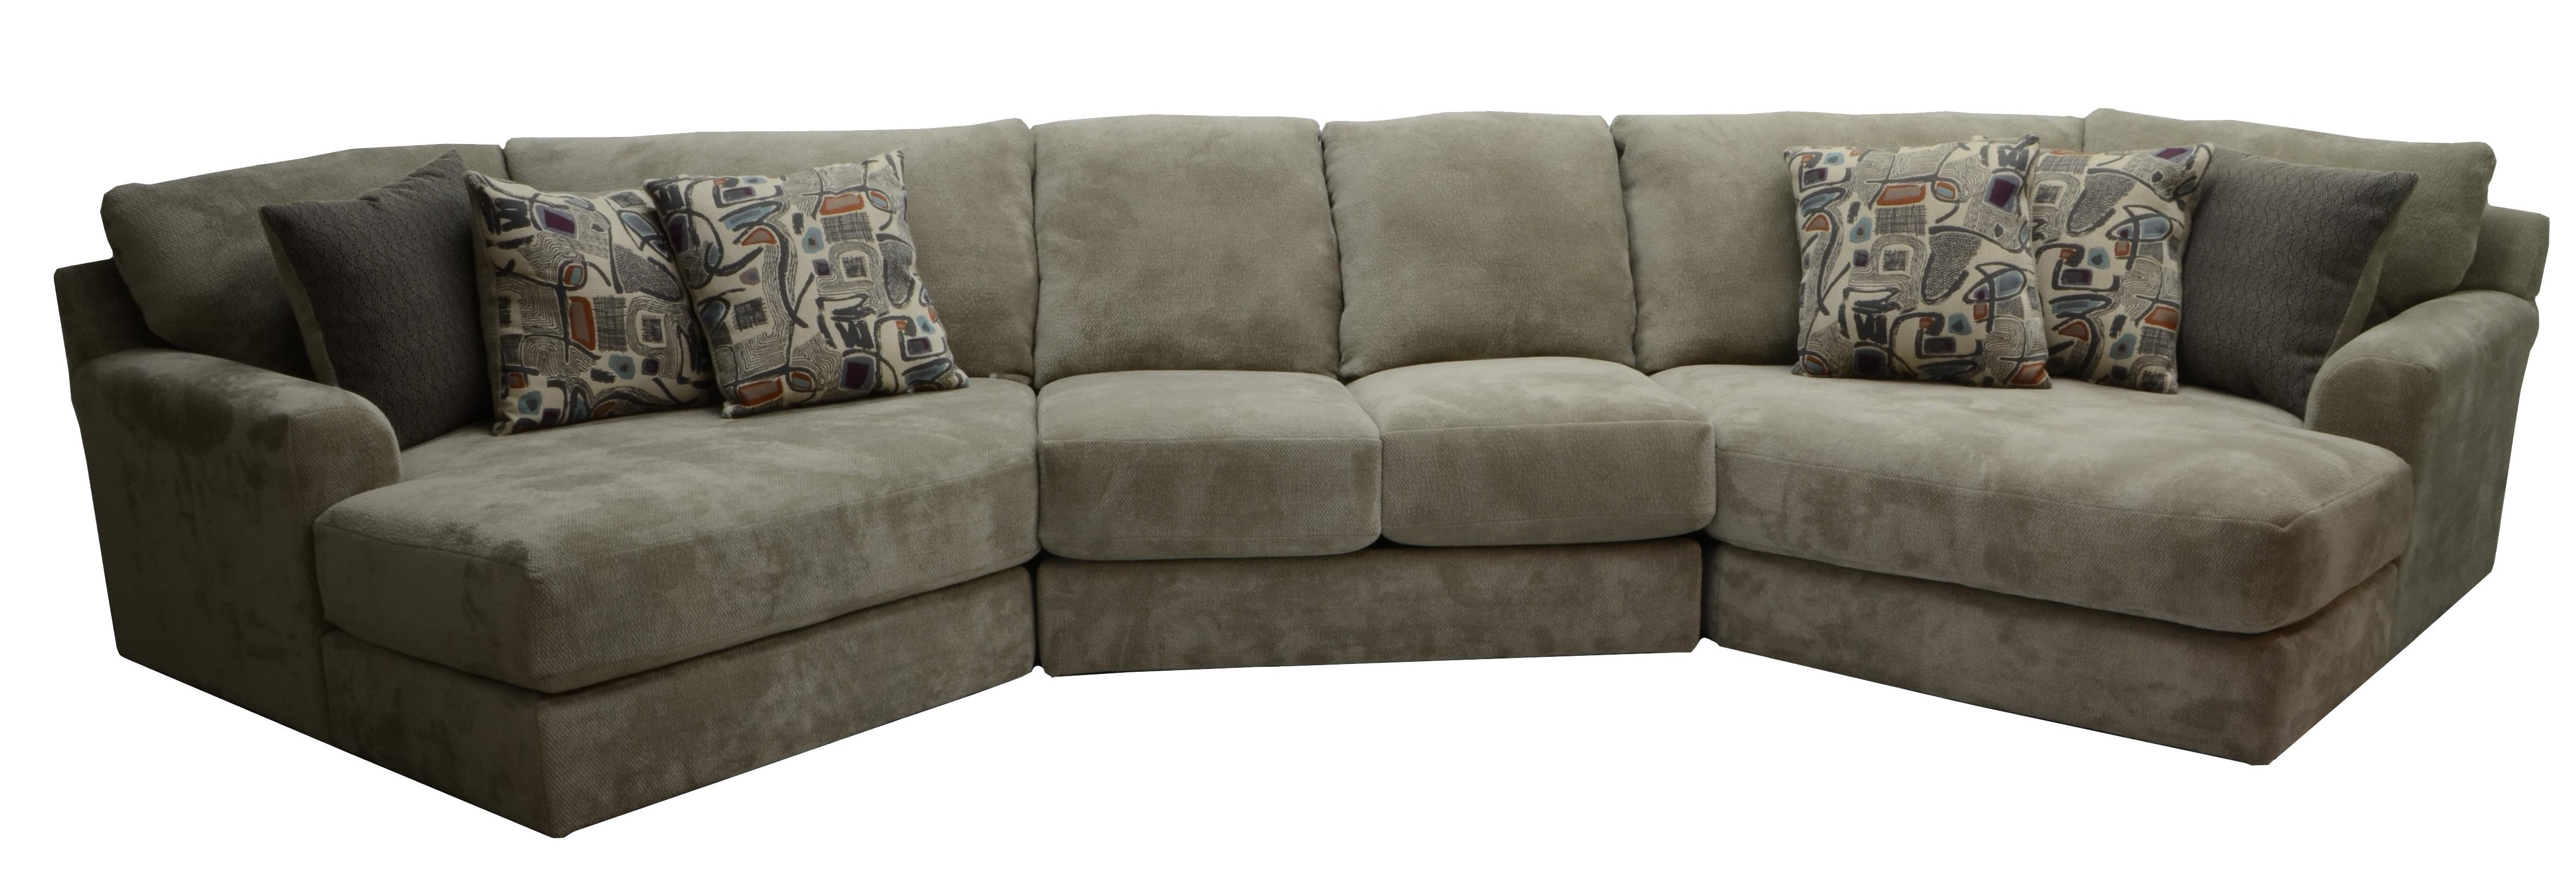 16 Wedge Sectional Sofa (View 15 of 20)